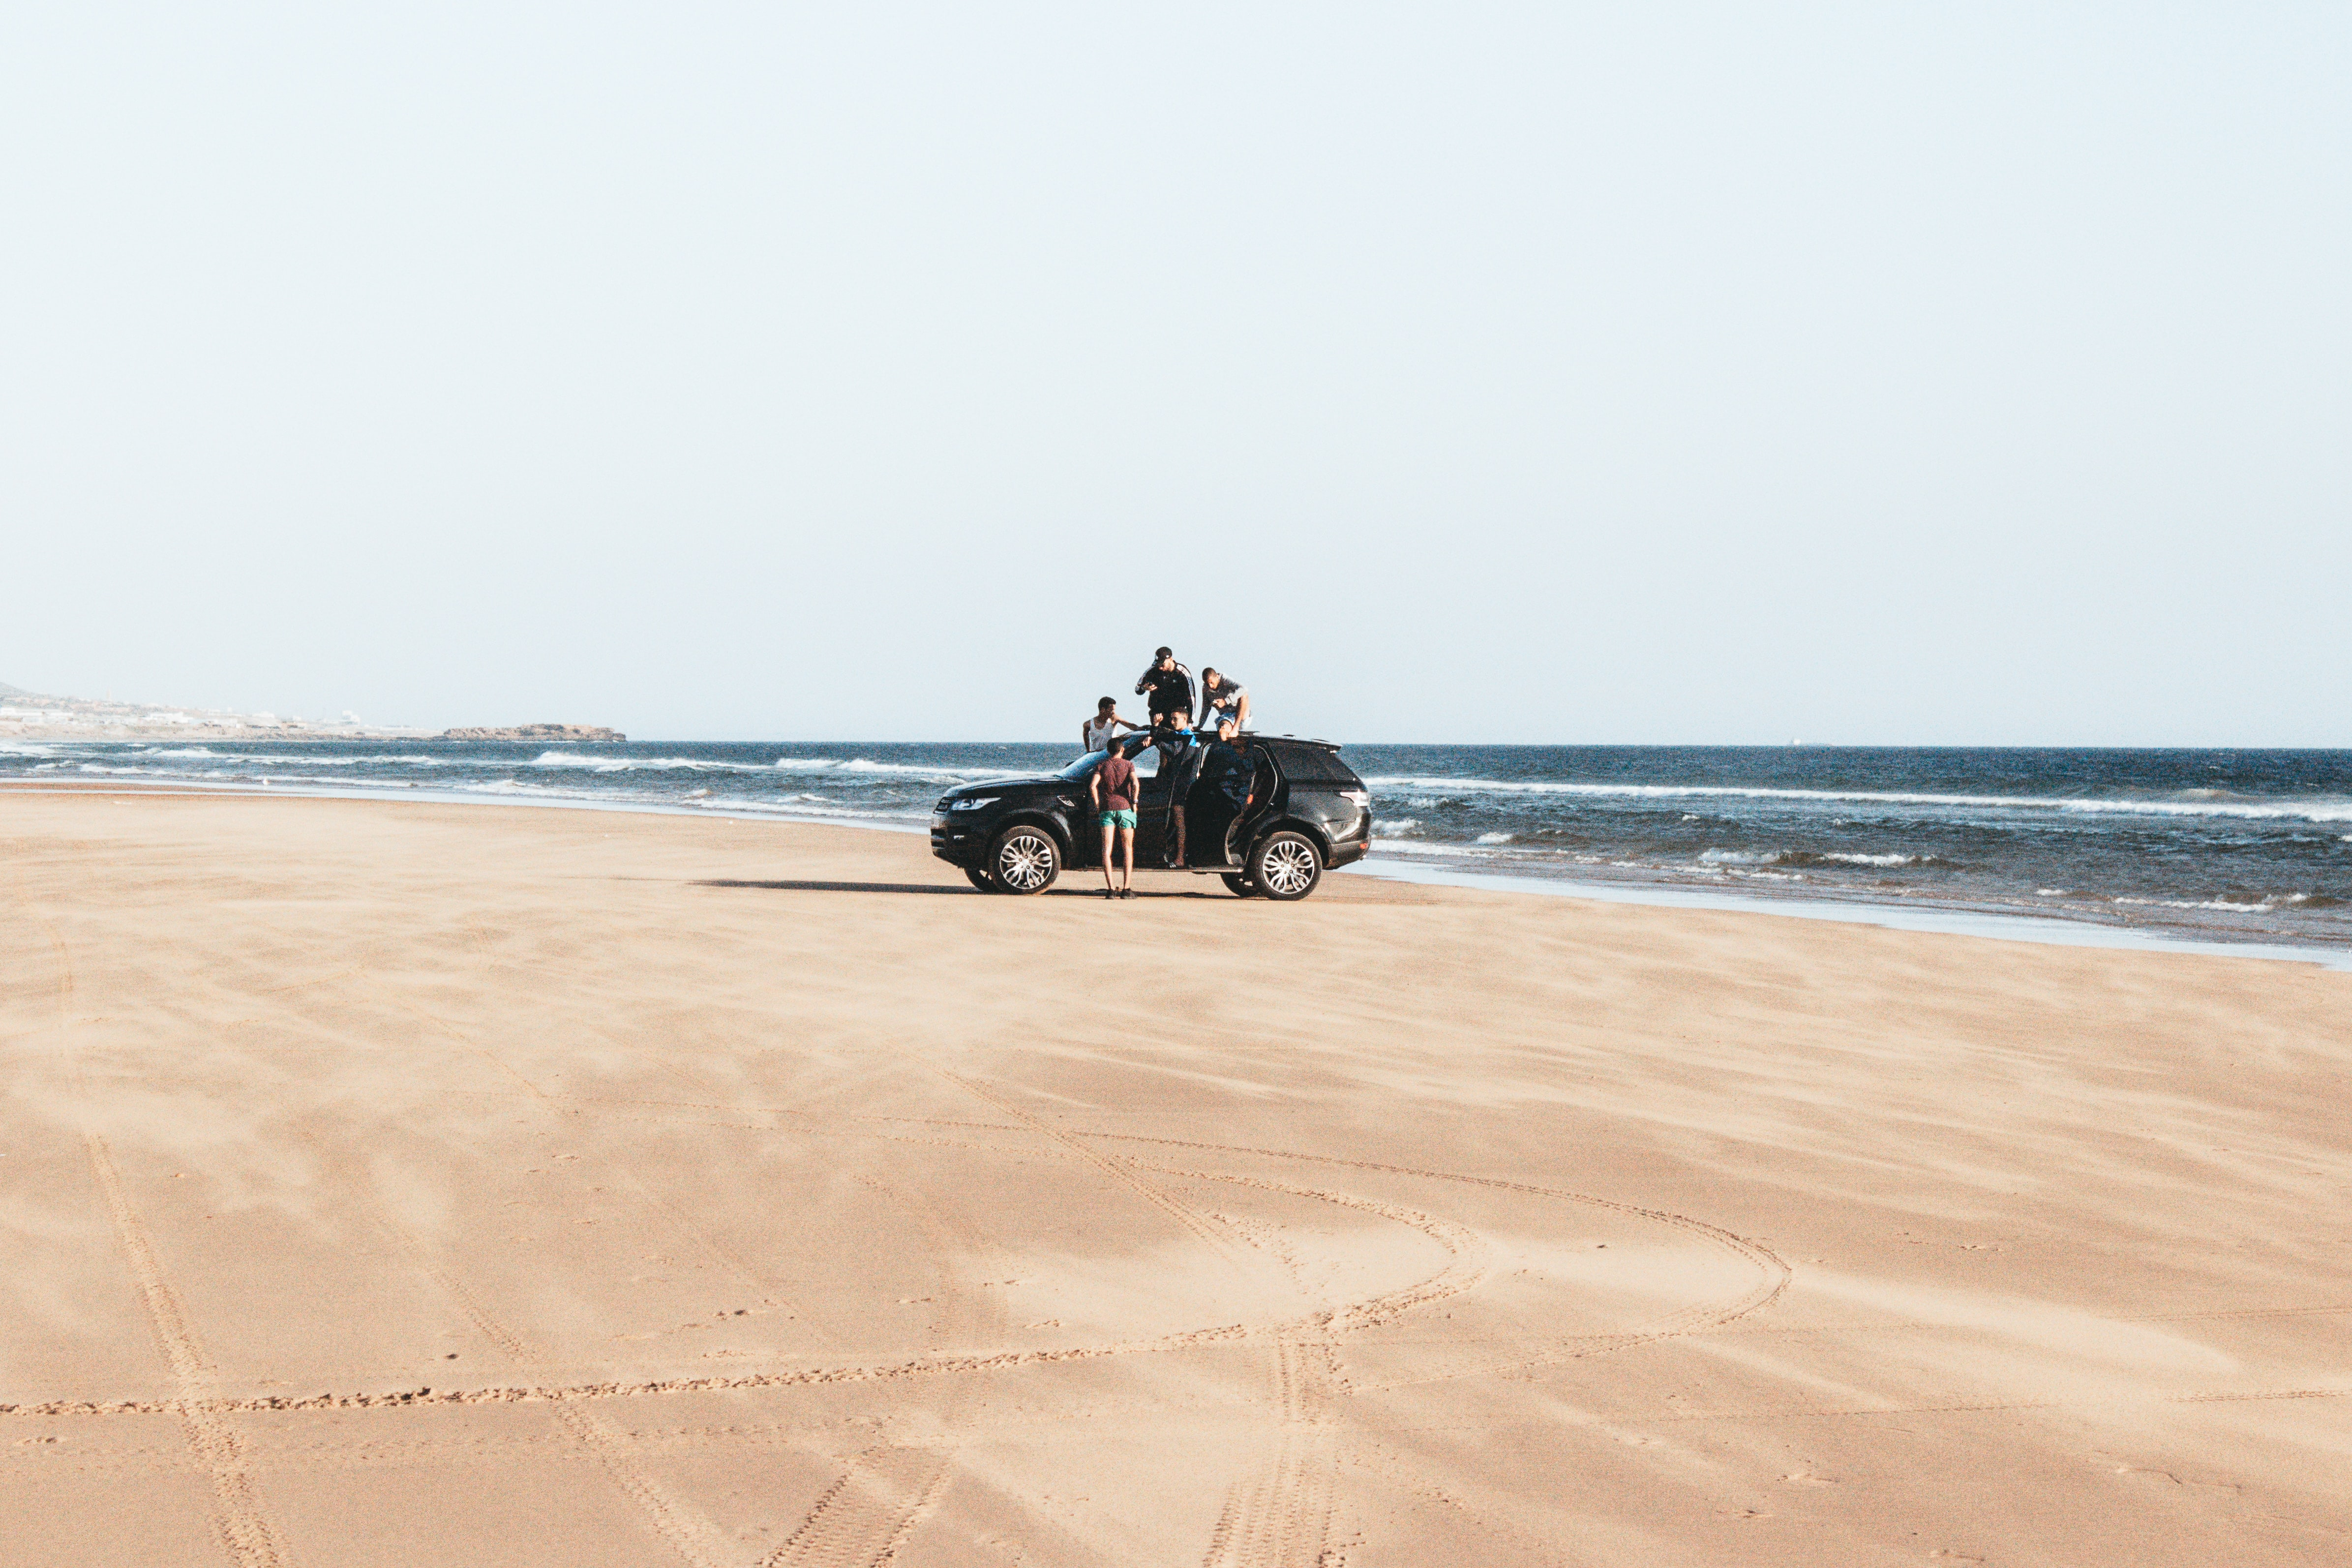 black vehicle parked on shore with four men during daytime